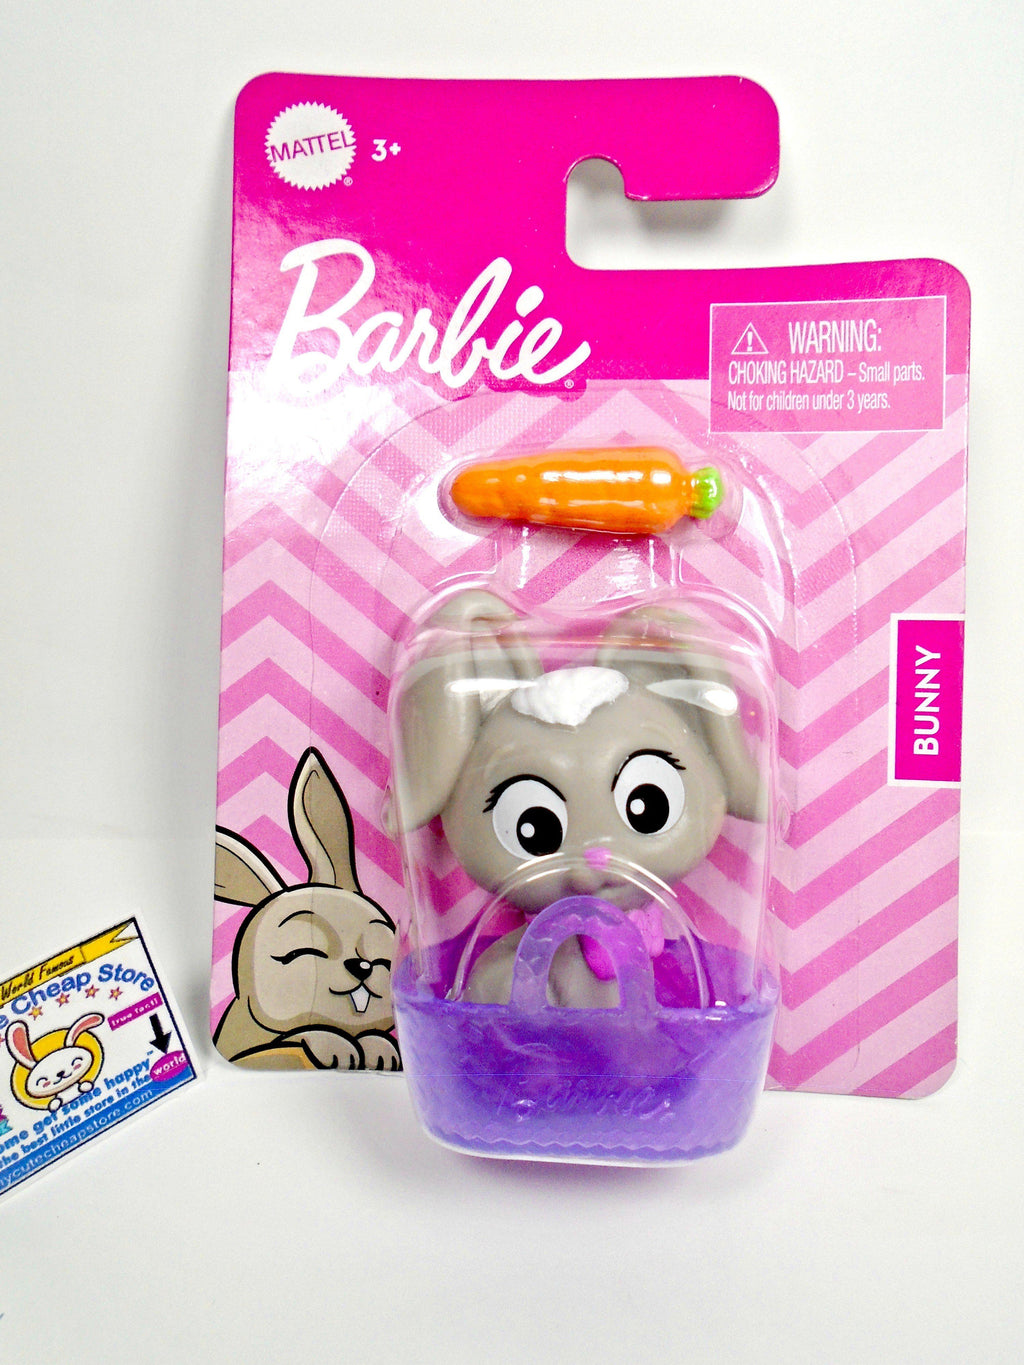 Barbie Bunny Collectible - My Cute Cheap Store